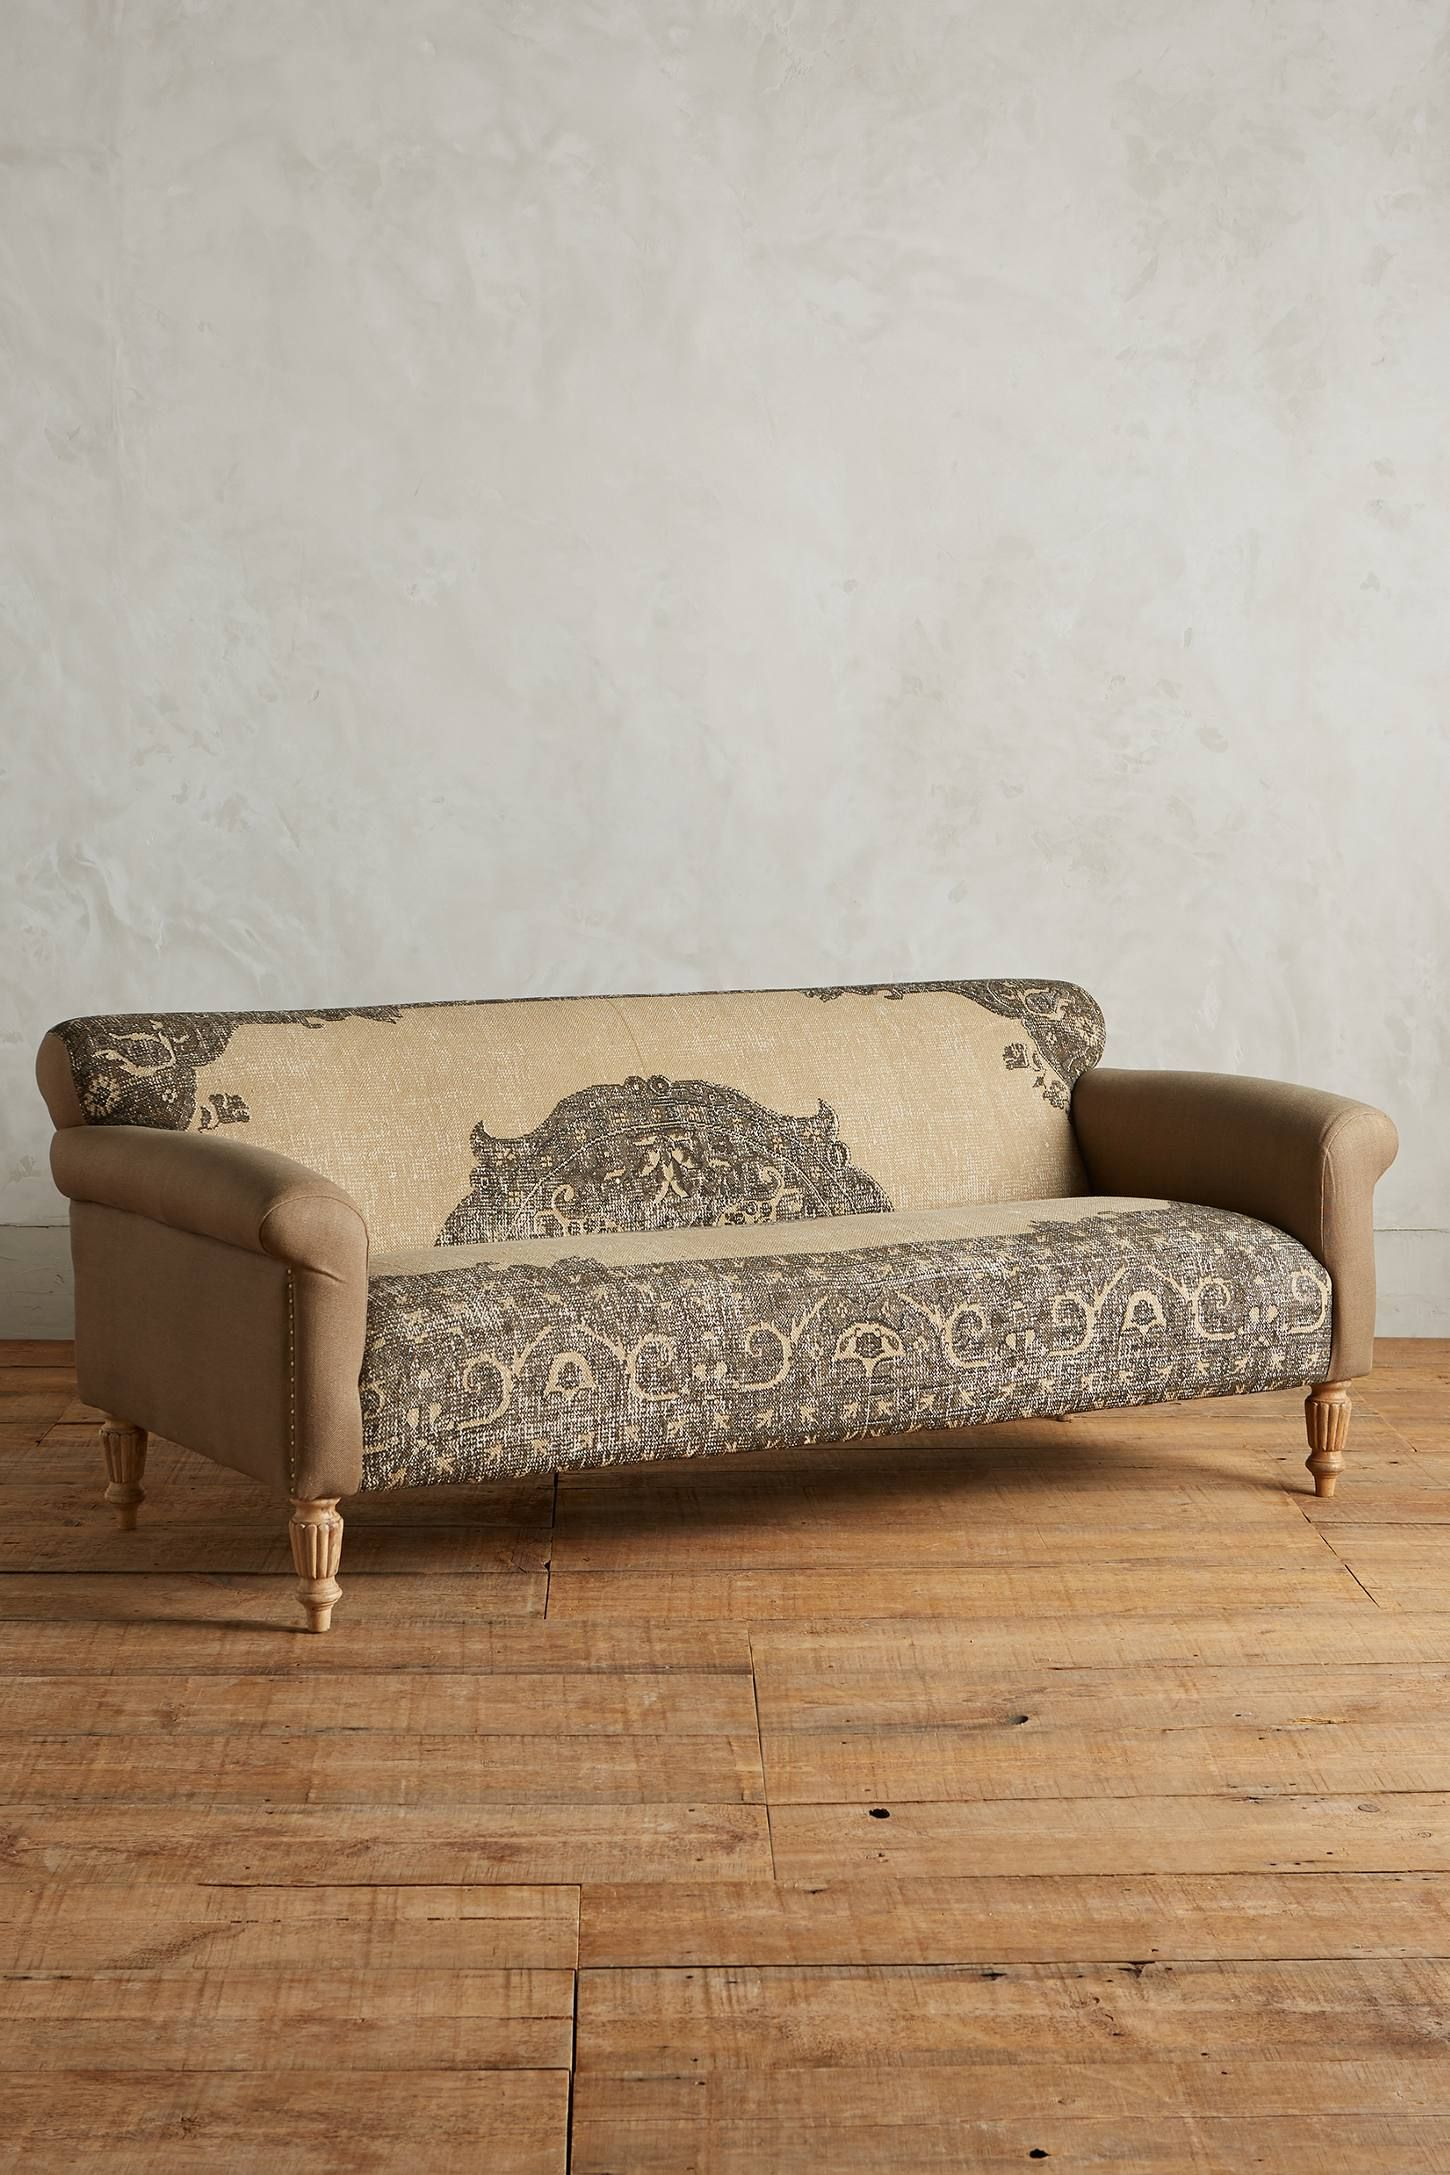 Anthropologie Sofa Italian Sofas Toronto Reviews Review Home Co